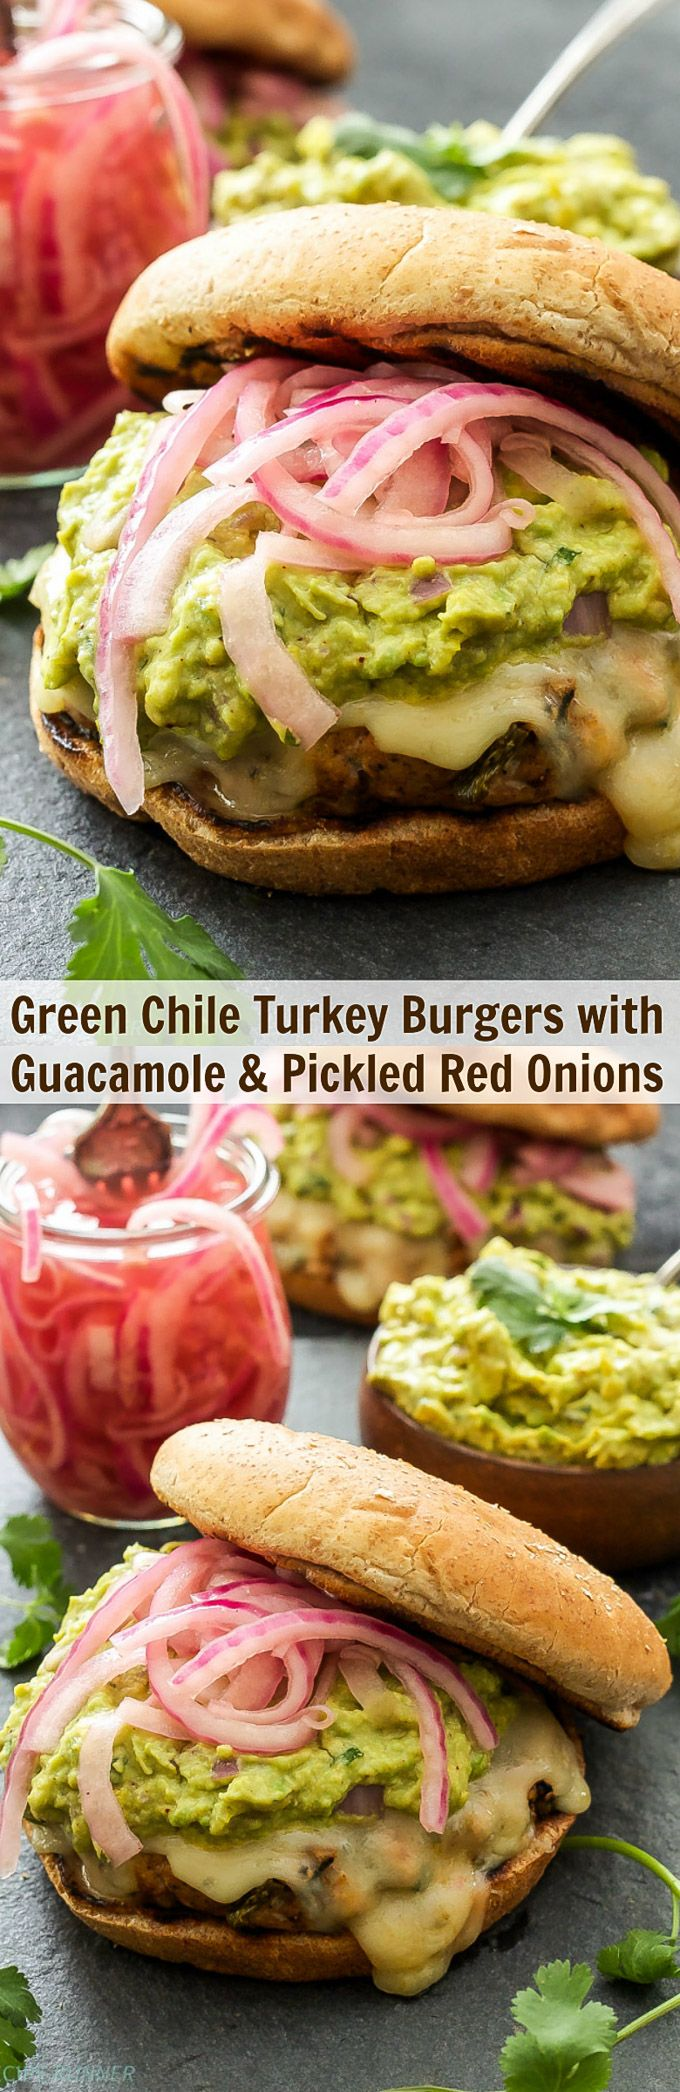 Green Chile Turkey Burgers with Guacamole and Pickled Red Onions ...